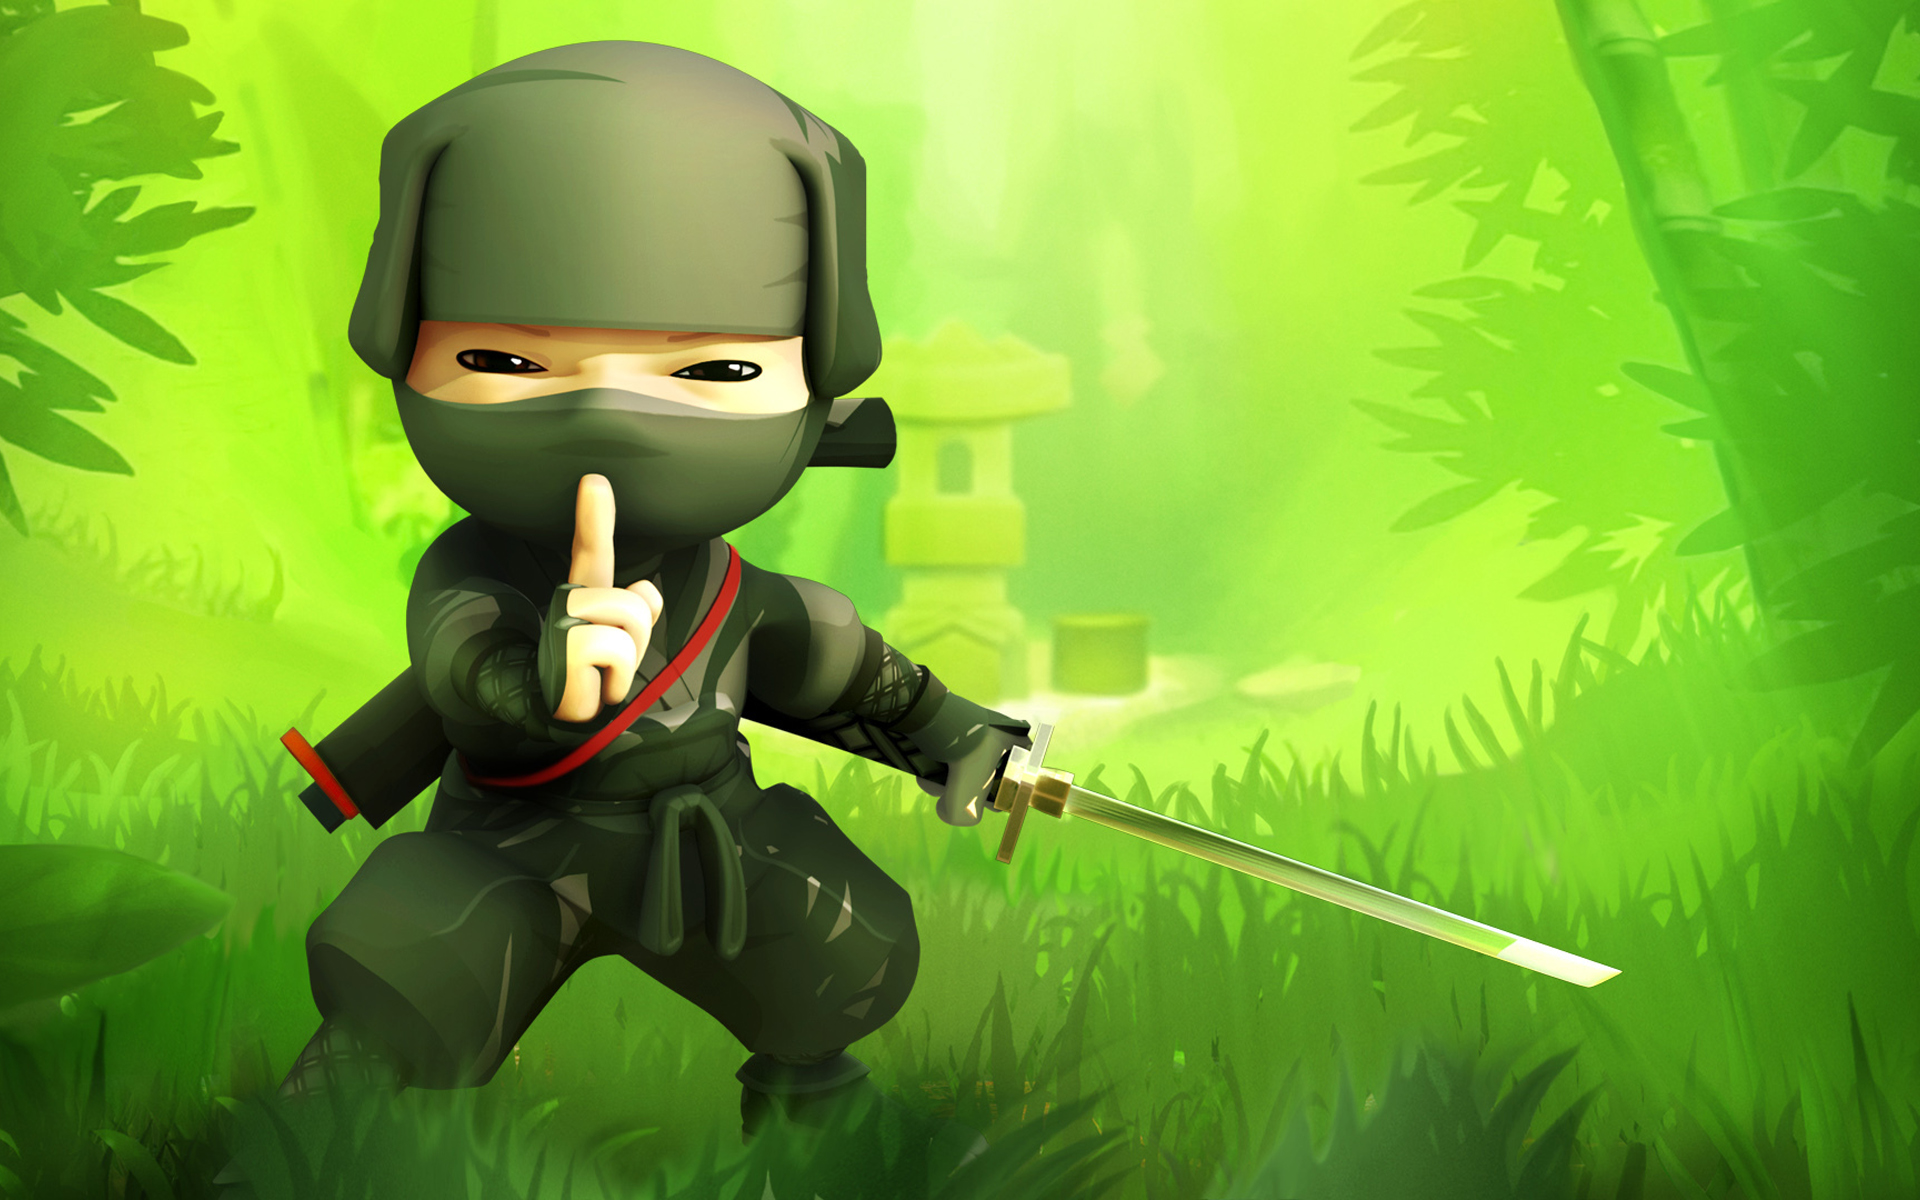 Mini Ninjas Hiro 1418.92 Kb